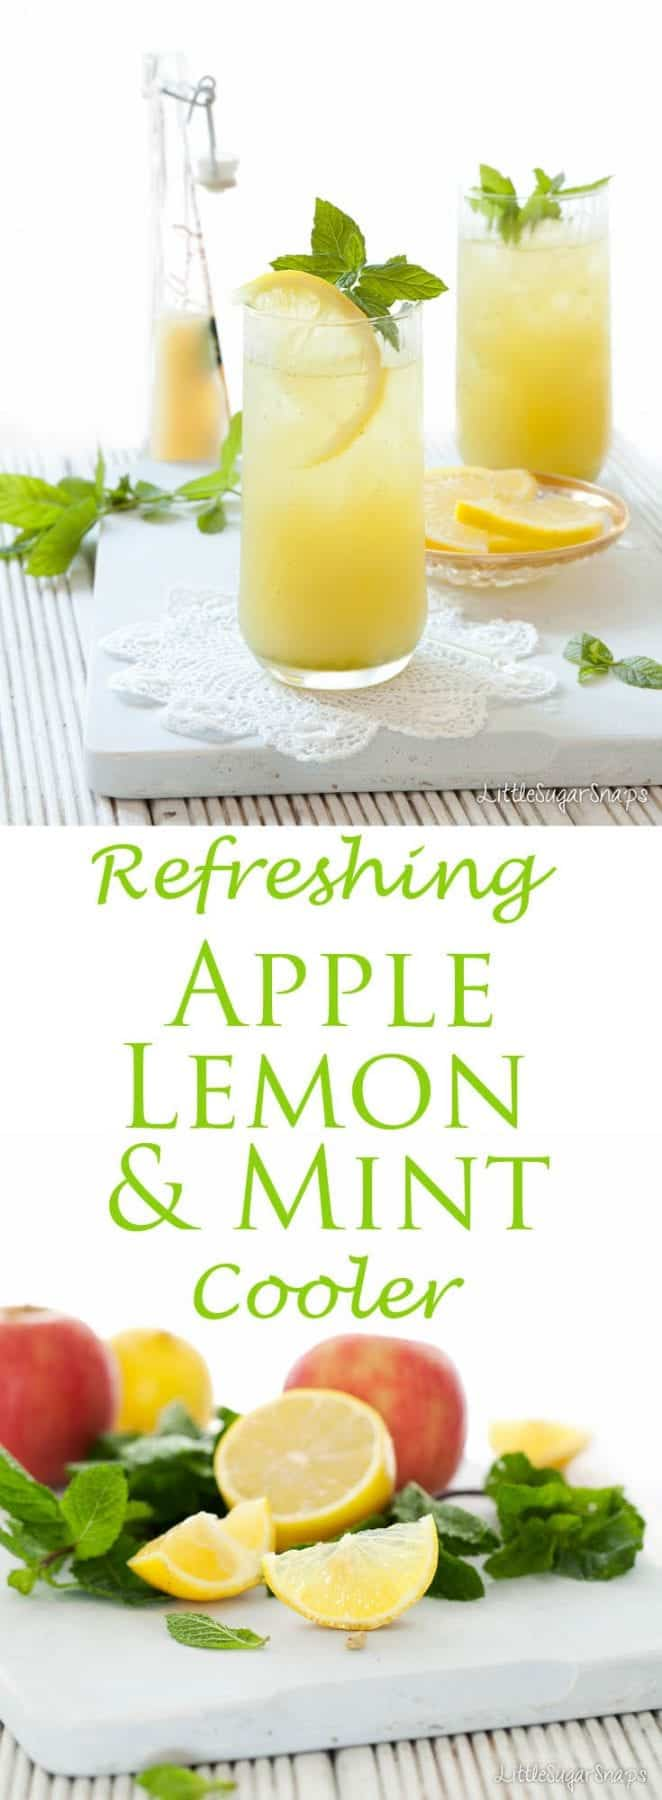 This Fruit Cooler is a simple blend of apple juice, lemon juice and fresh mint. It is fresh, fruity, tangy and amazingly thirst quenching. #fruitcooler #applecooler #applemint #juice